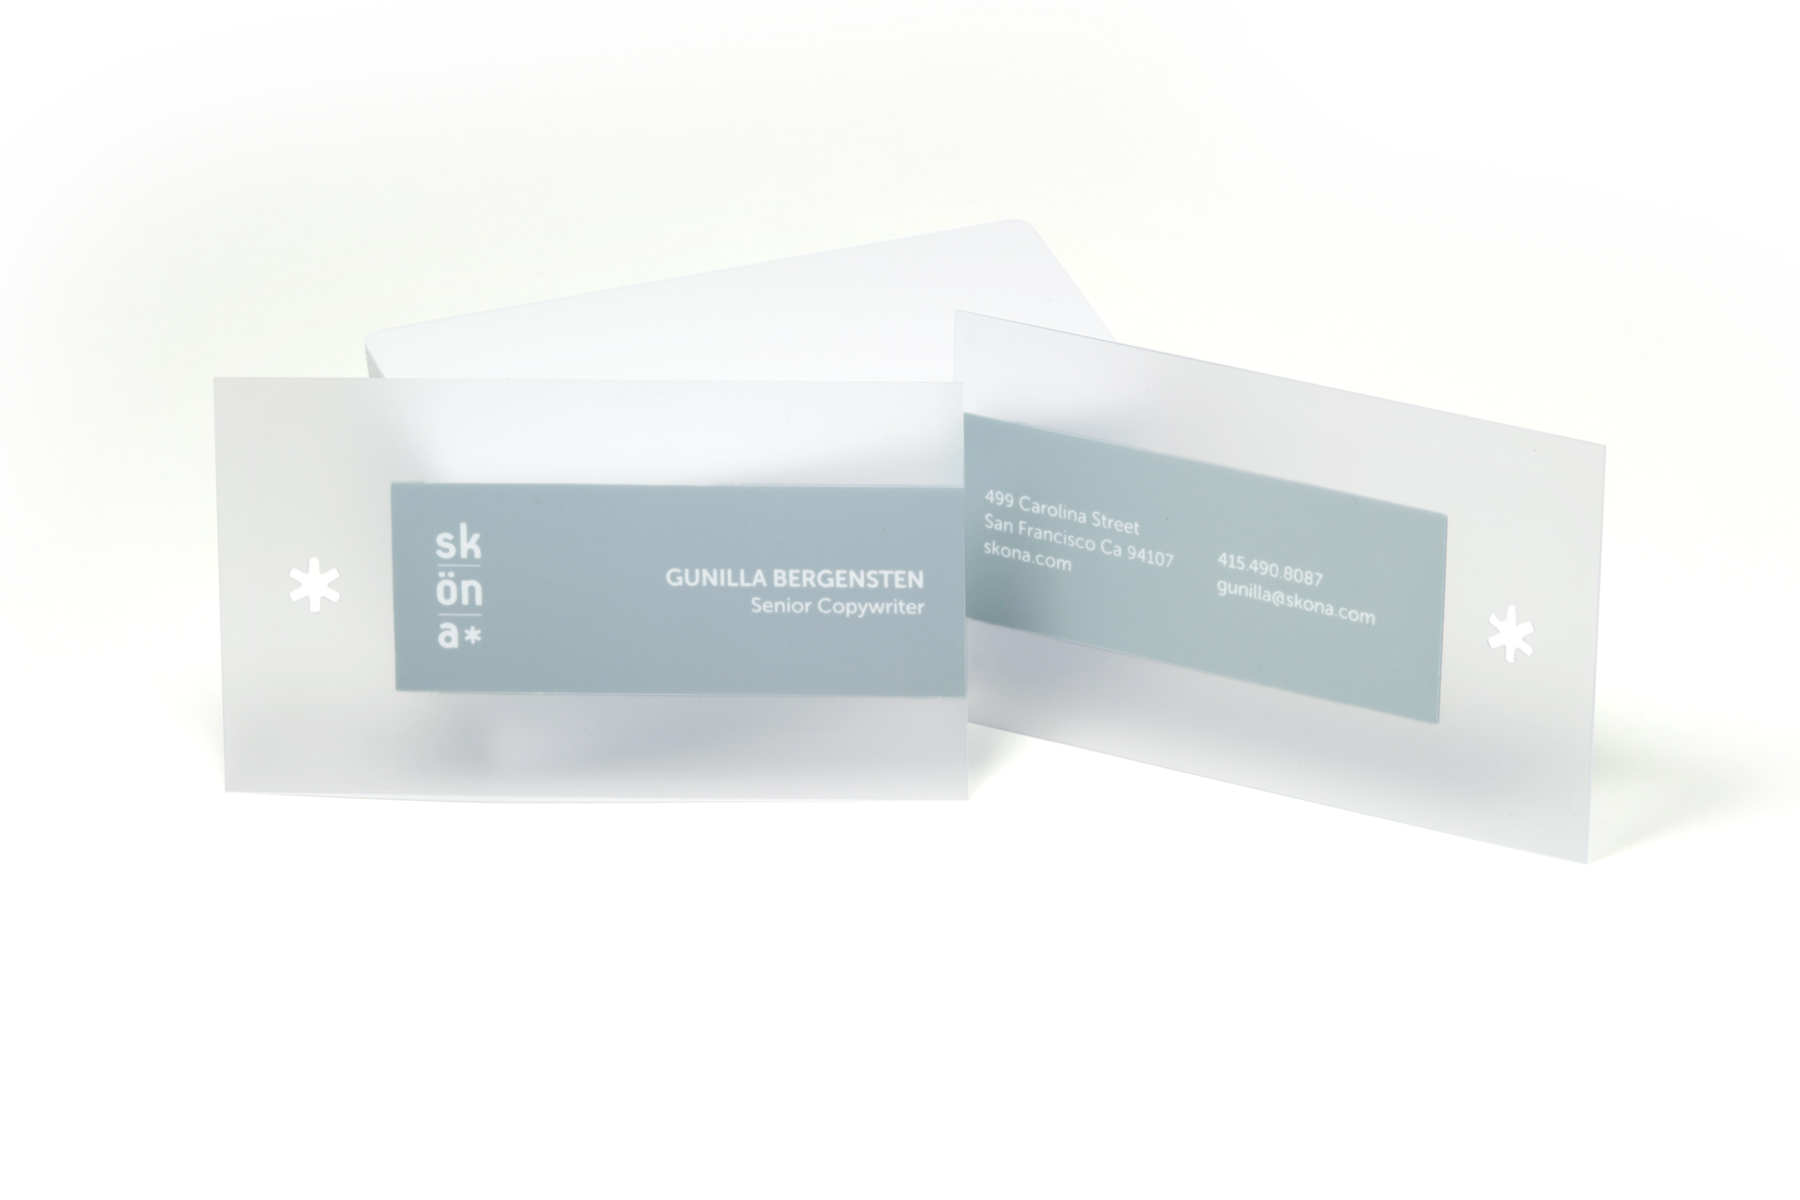 Plastic Business Card Design: 5 Unique Ideas | Blog